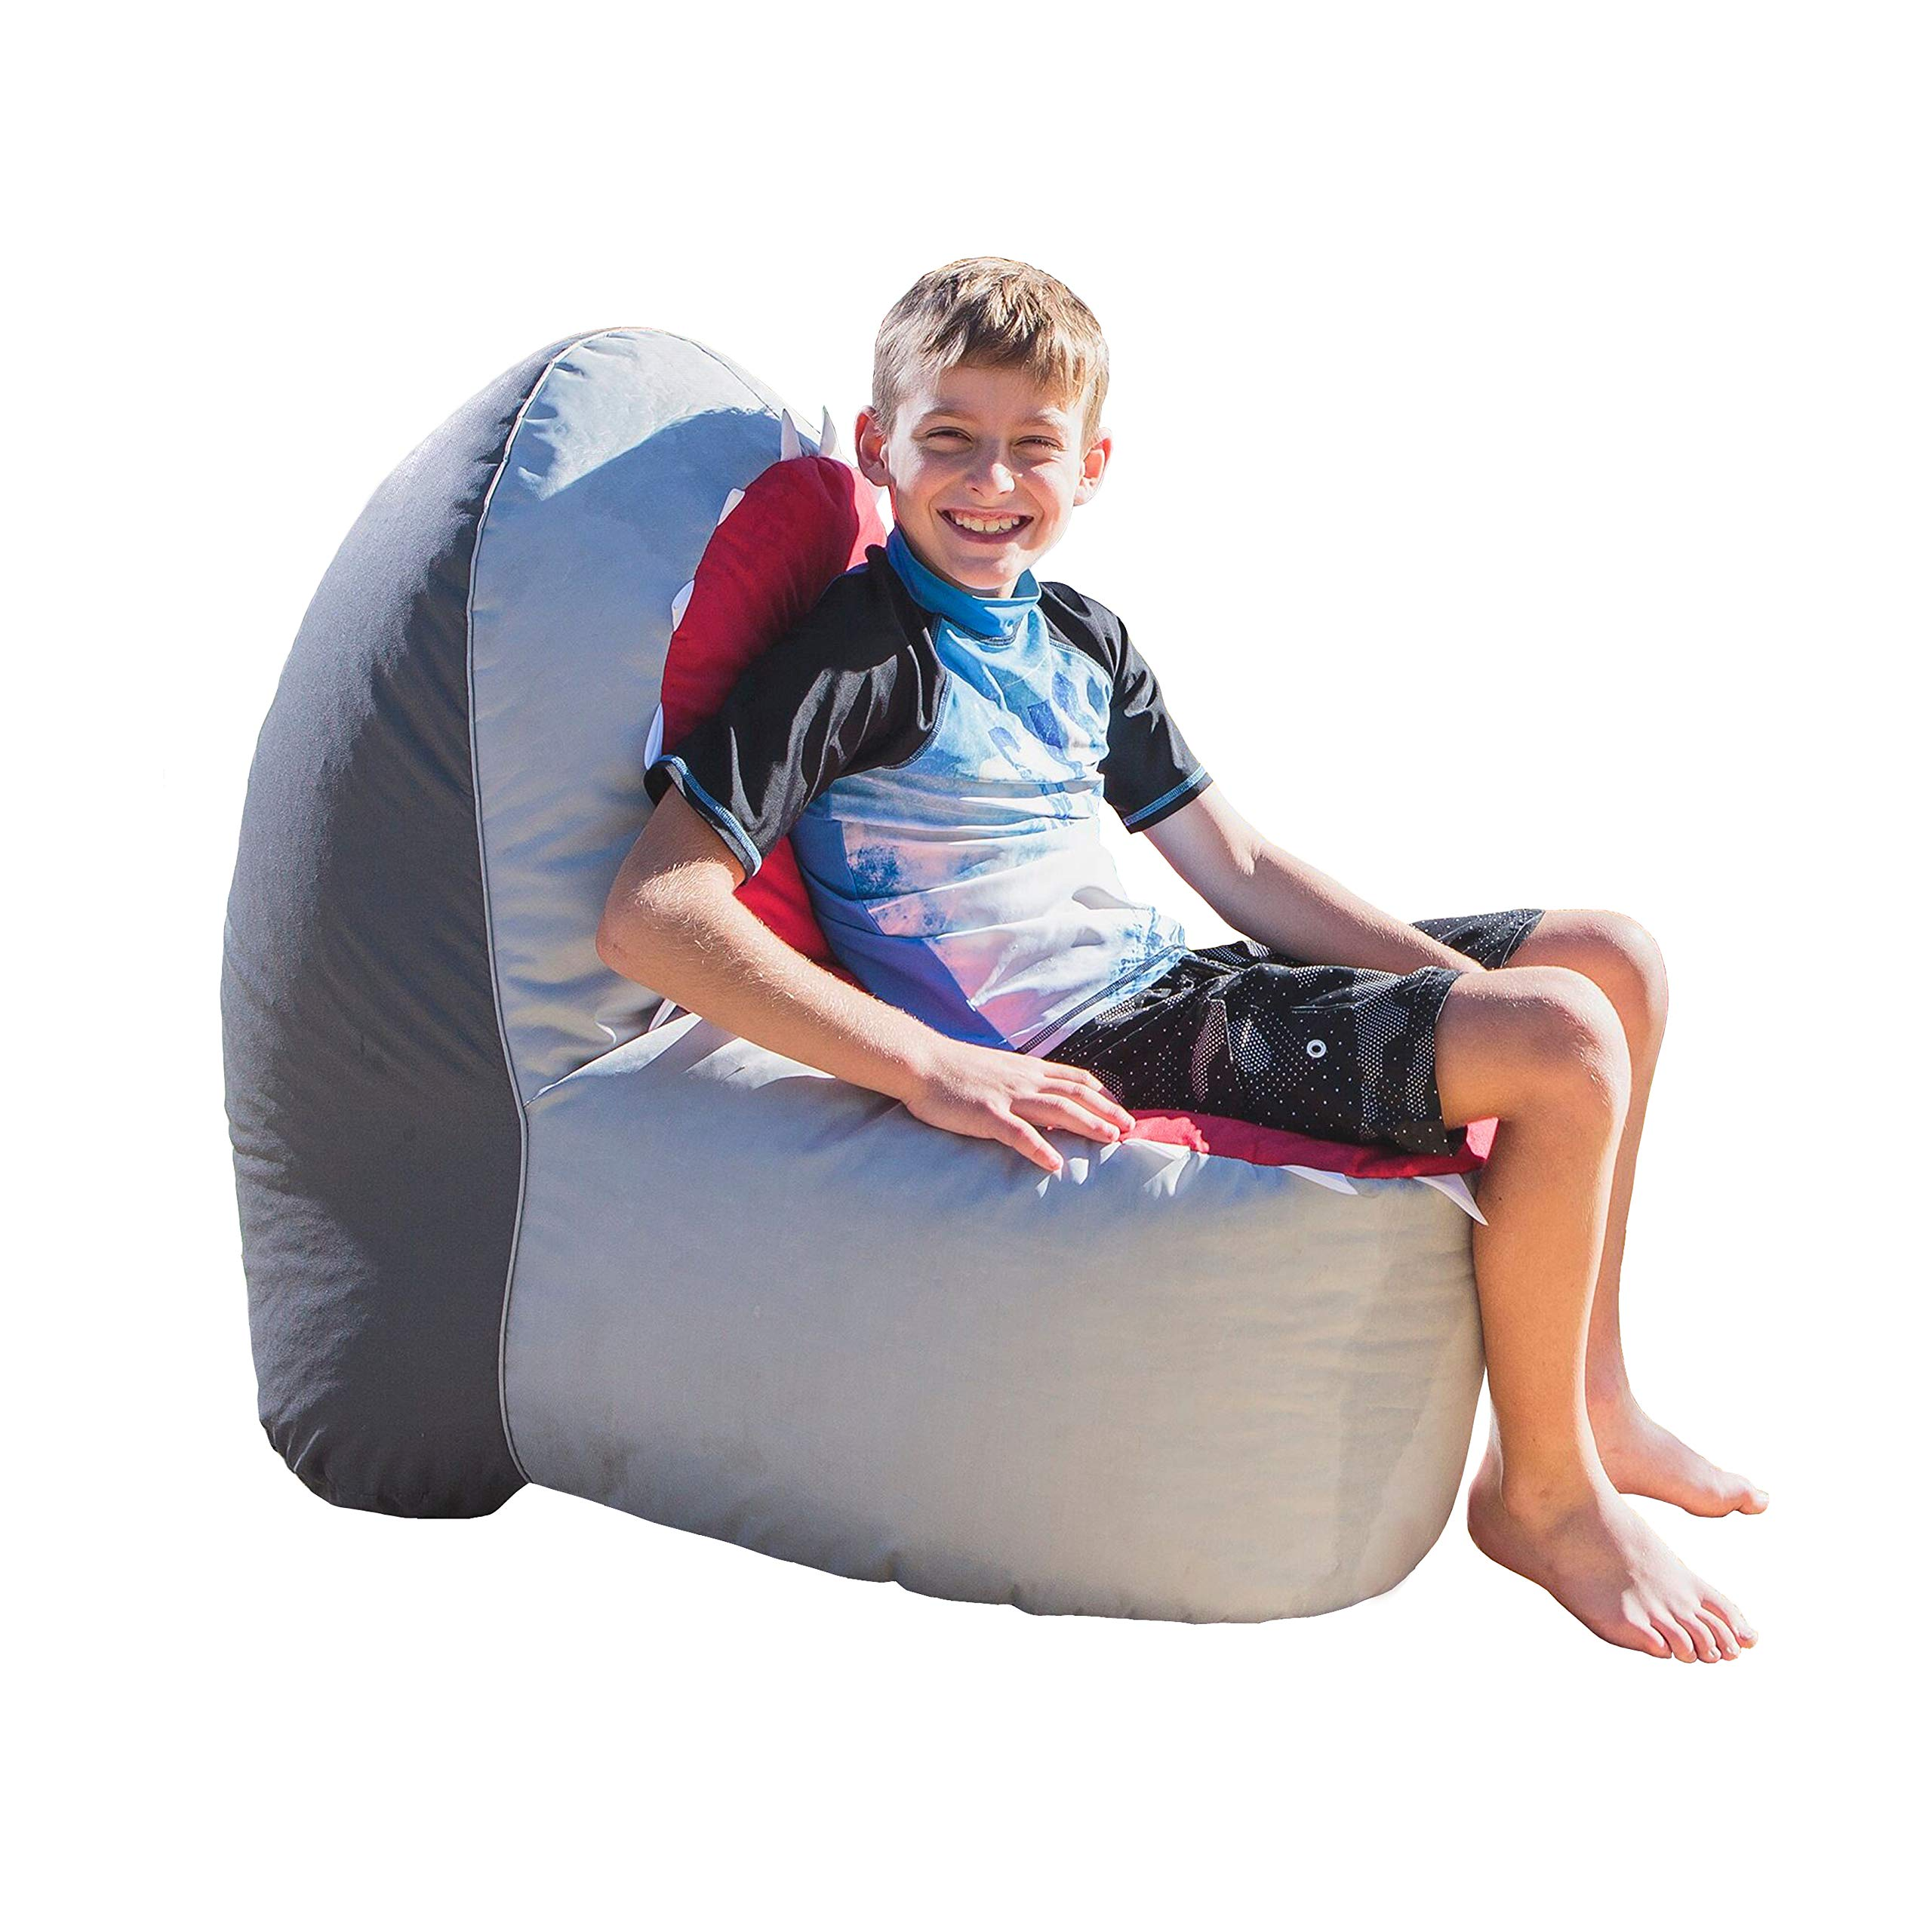 Rickety Rock  Bean Bag Chair Indoor Only Without Filling for Toys and Stuffed Animal Storage ,   Indoor Outdoor, Waterproof  Polyester, Shark,  XL by Rickety Rock